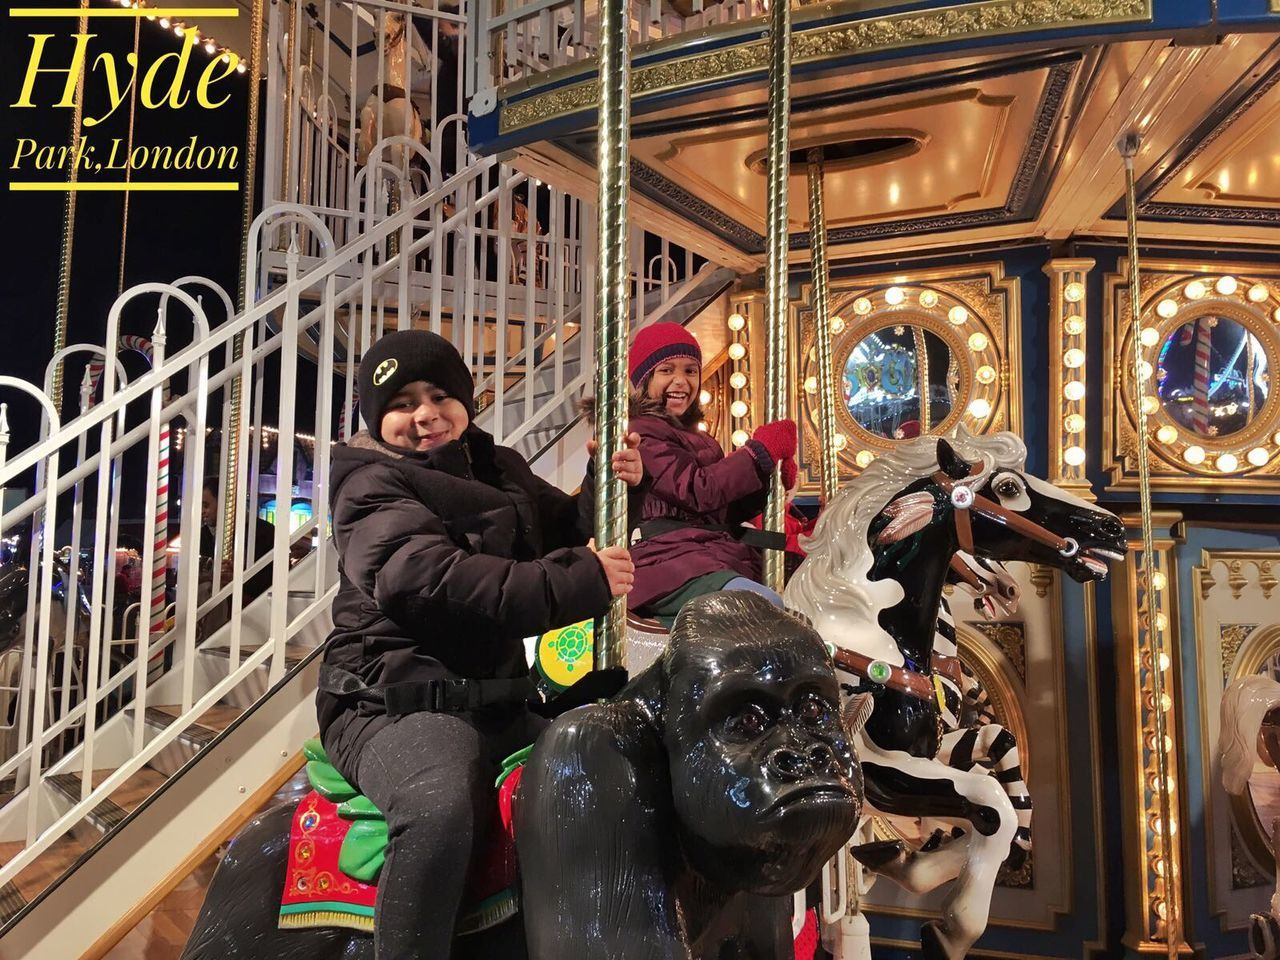 Arts Culture And Entertainment Two People City Outdoors Animal Themes Portrait Smiling Amusement Park Togetherness Cousins ❤ Hydepark LONDON❤ Winter Wonderland UK Dairies